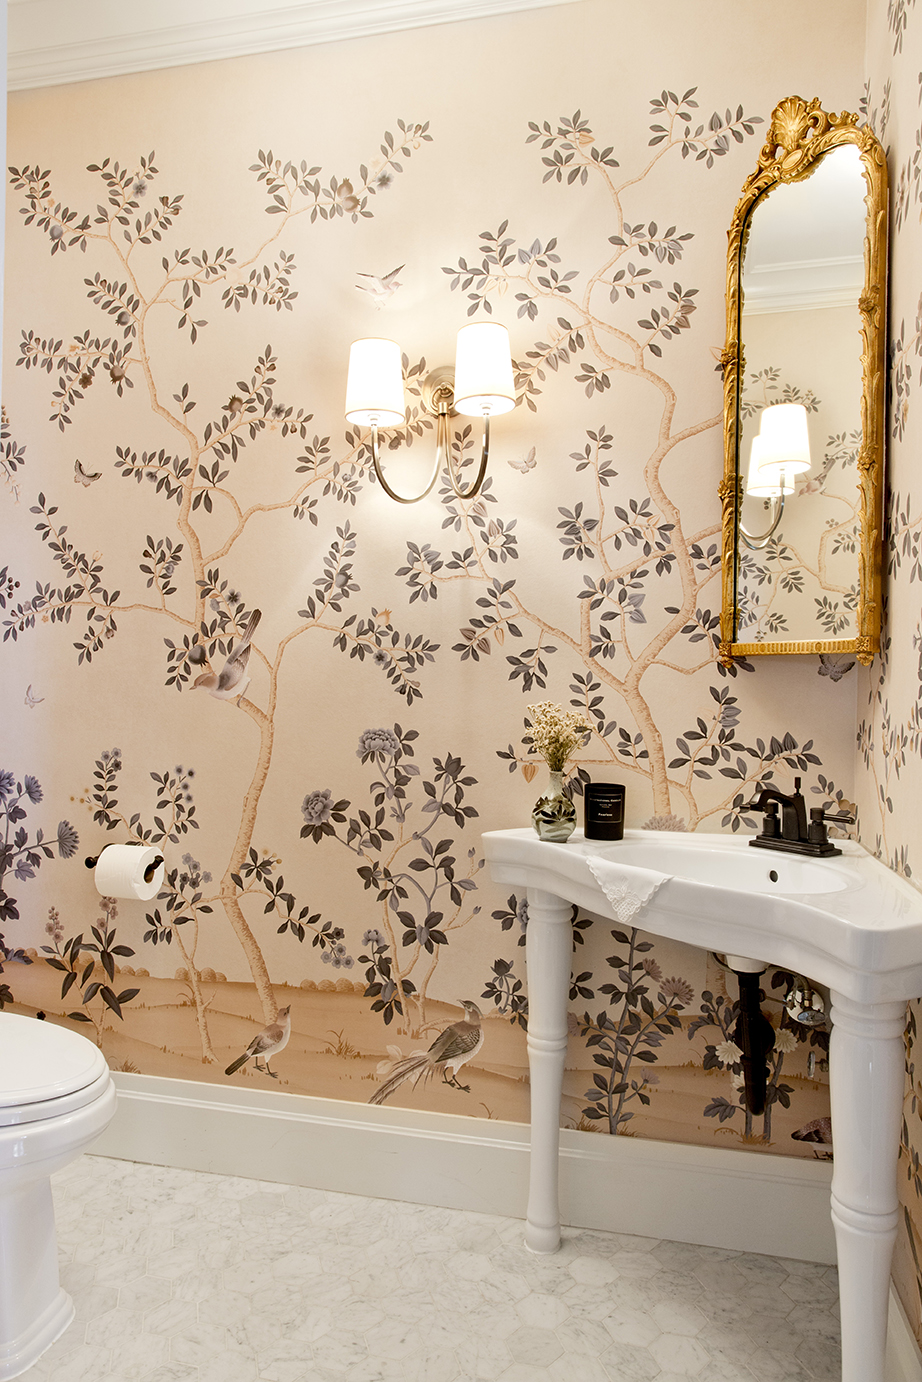 WHIW78_PAMELADAILEYDESIGN-POWDER-ROOM-IDEAS.jpg